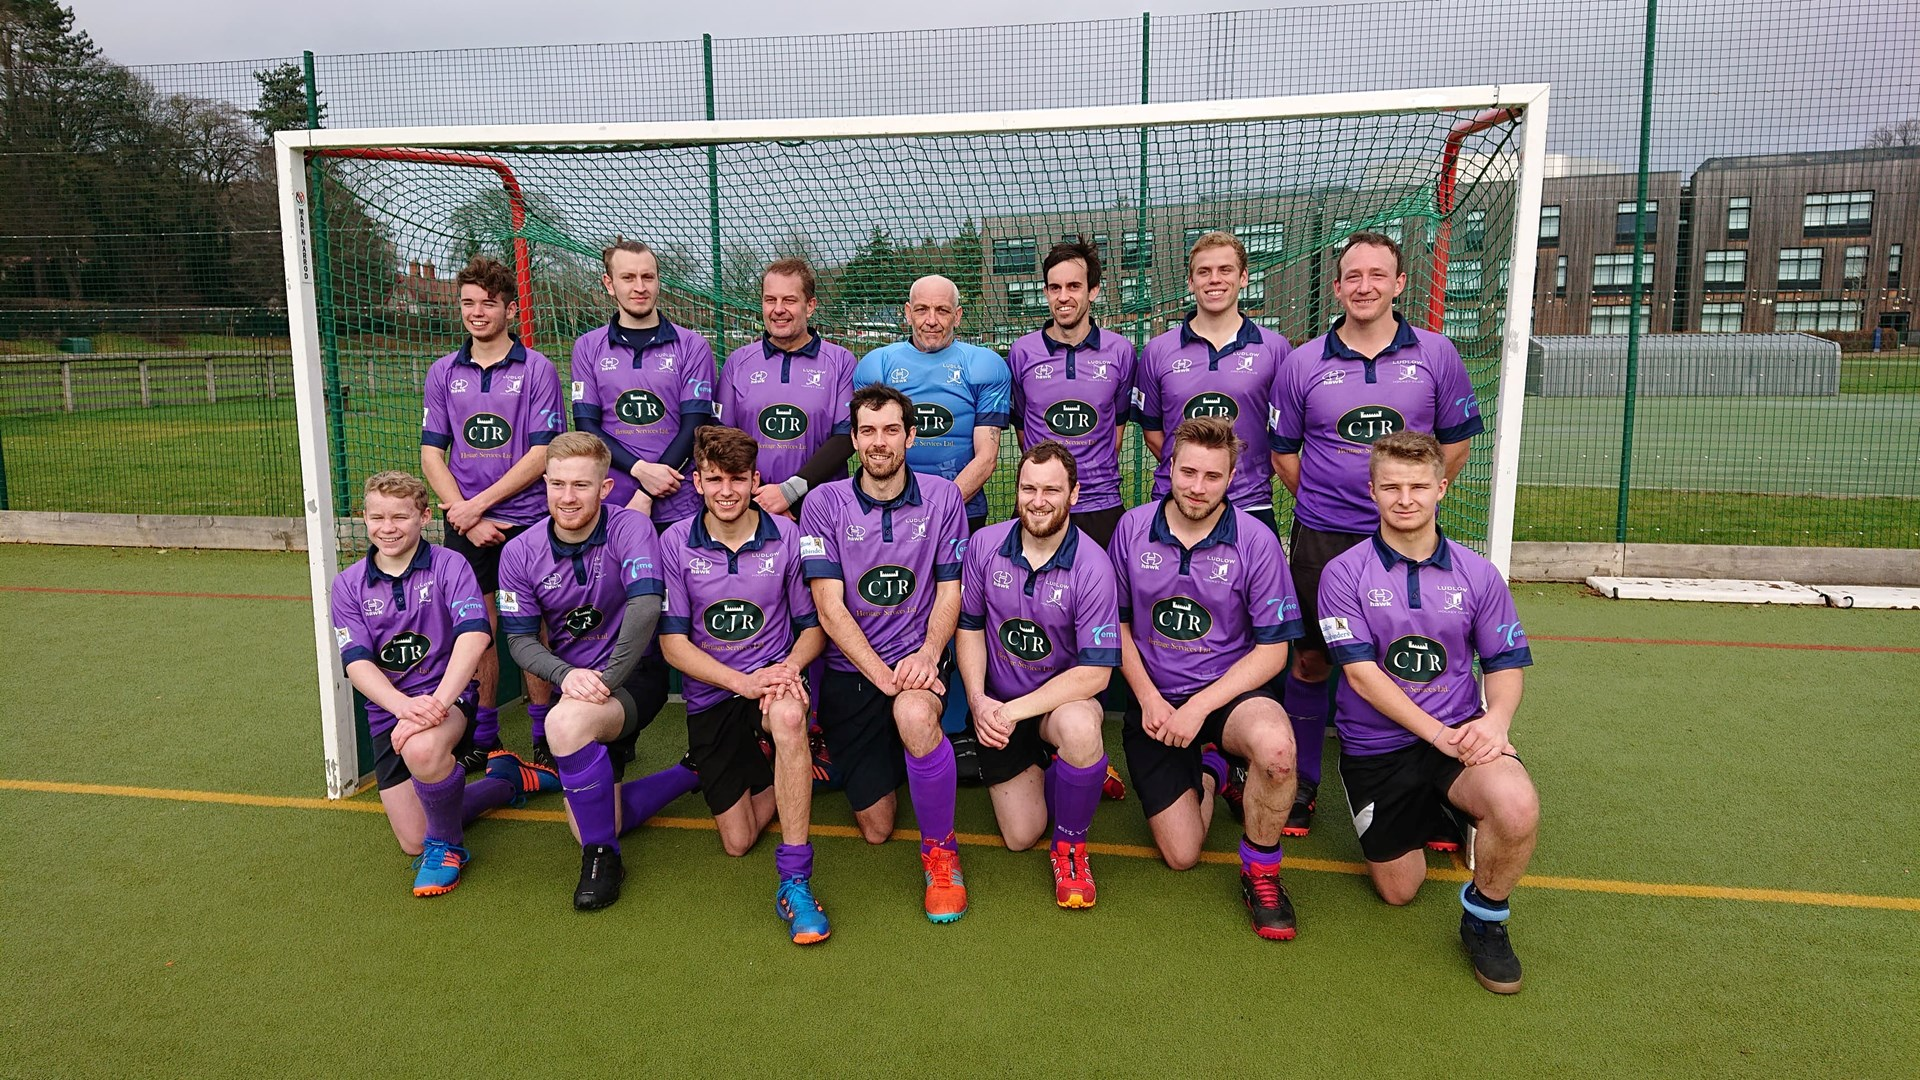 Men's 1st Team 2018/19 Back row left to right Sam Pratt, Matt Blount, Graham Hutchinson, Dave Hughes, Andrew Richards, Lawrence Richards, Craig Heath. Front row Luke Mathews, Jack Phasey, Brenden Pratt, Stuart Richards, Joe Richards, Jake Watts and Jack Pritchard. Missing Gavin Hughes (captain), Ieuan Hutchinson and Mathew Jones